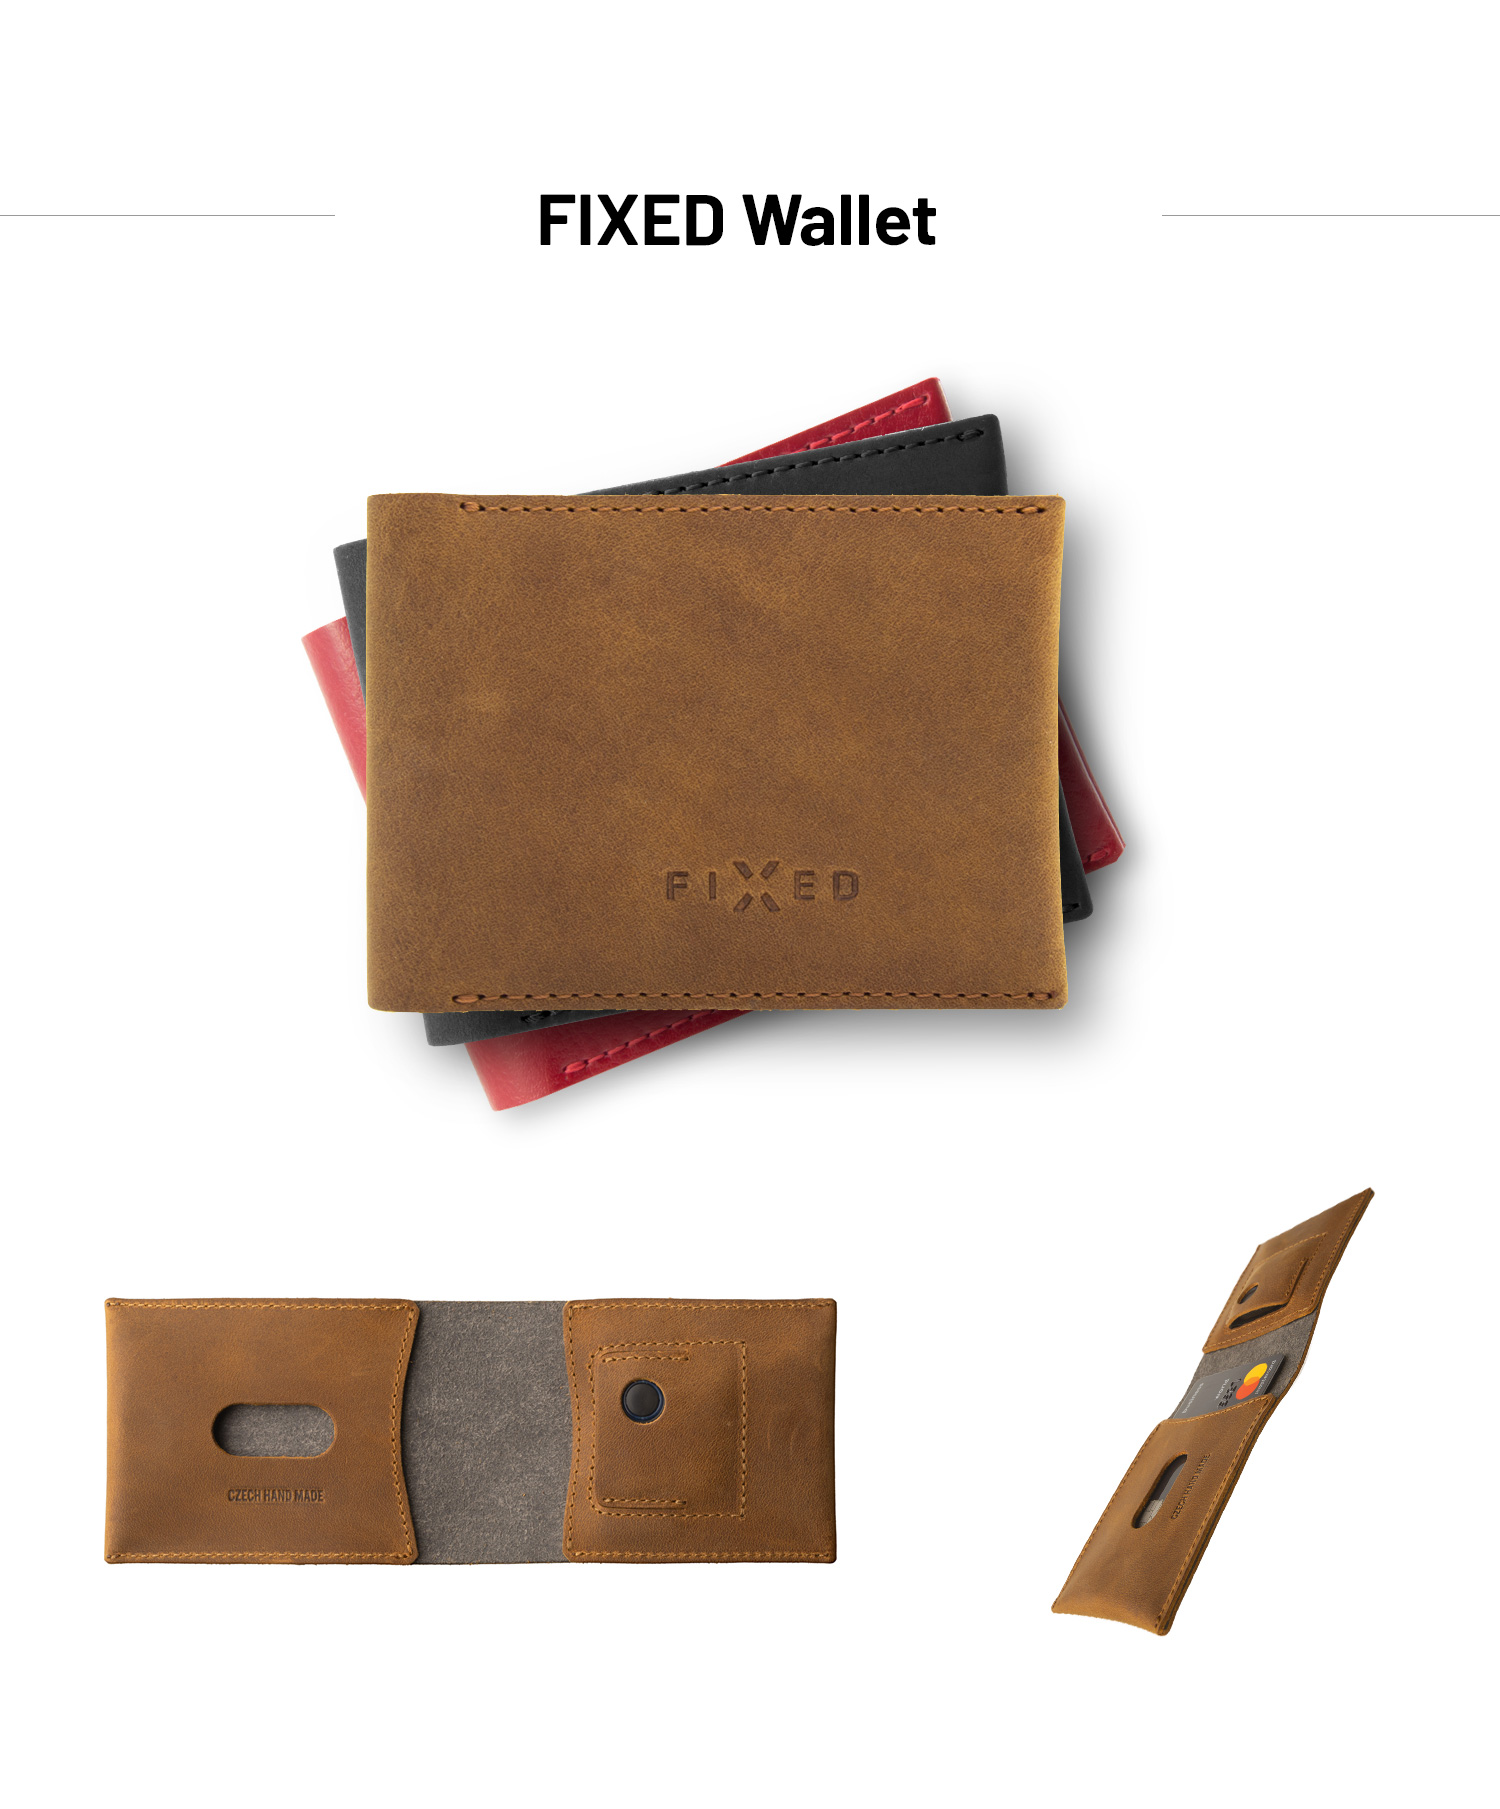 FIXED Wallet